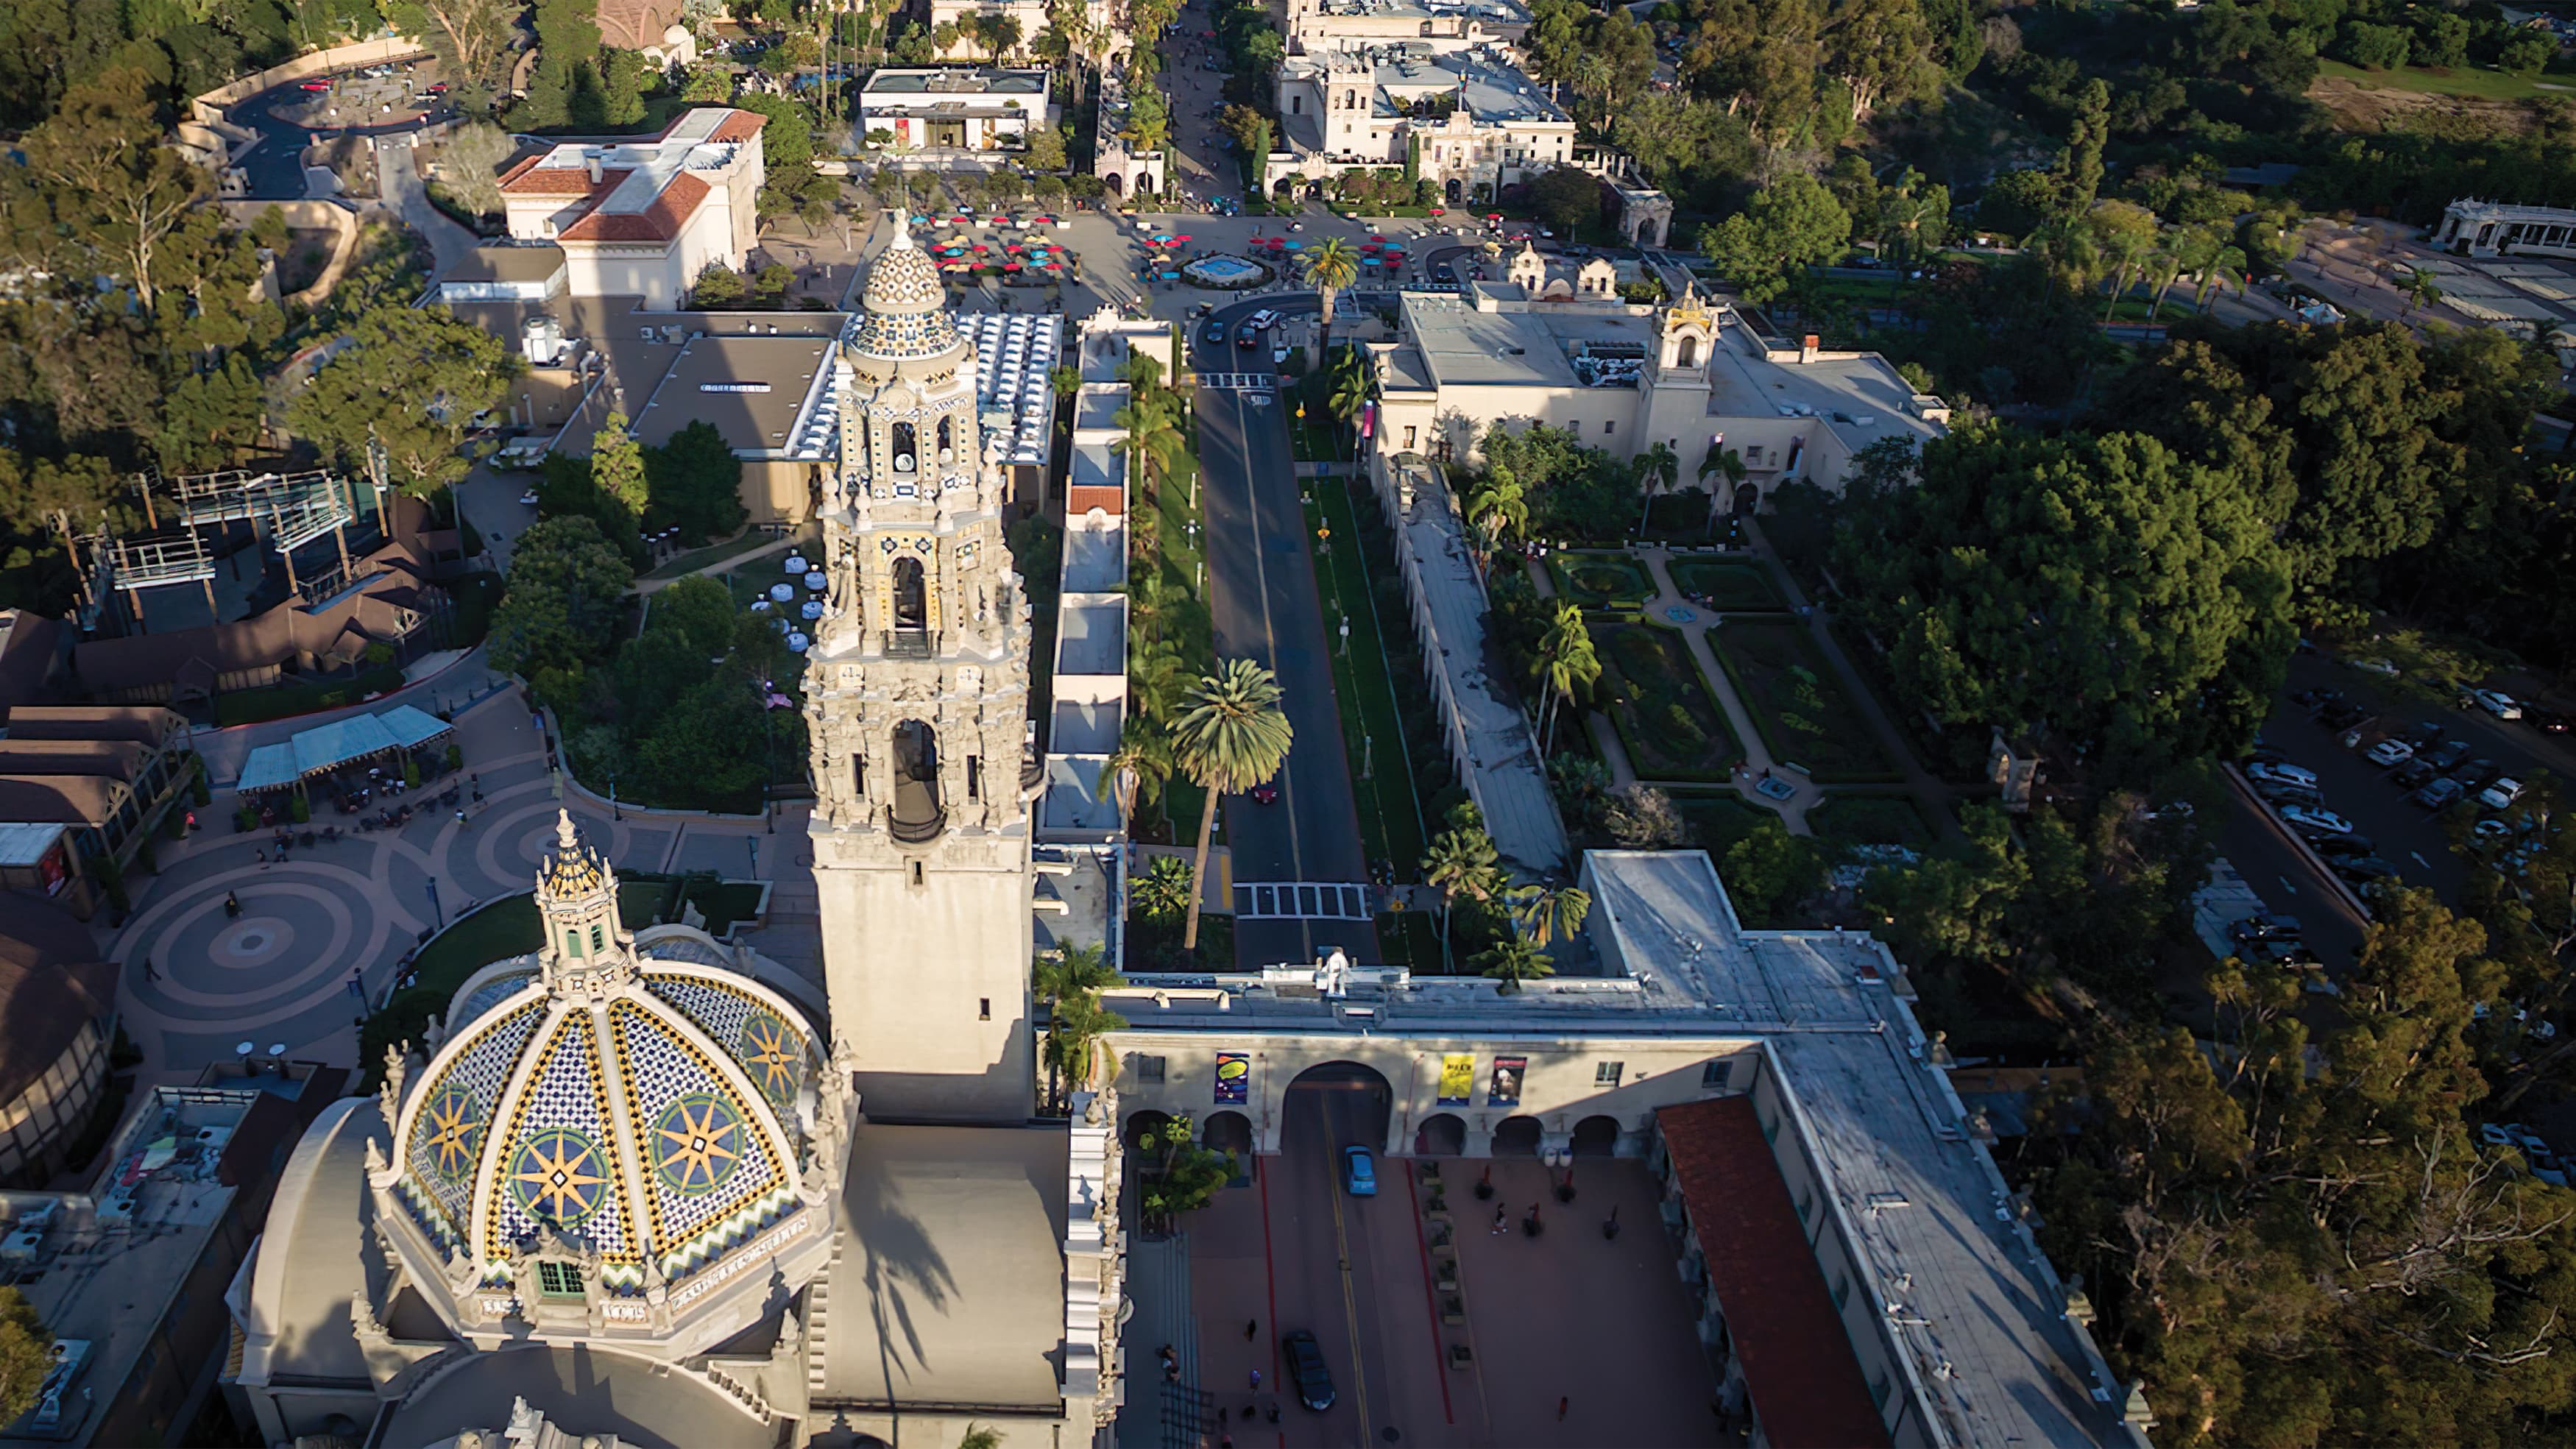 An aerial photograph of the iconic architecture of Balboa Park.